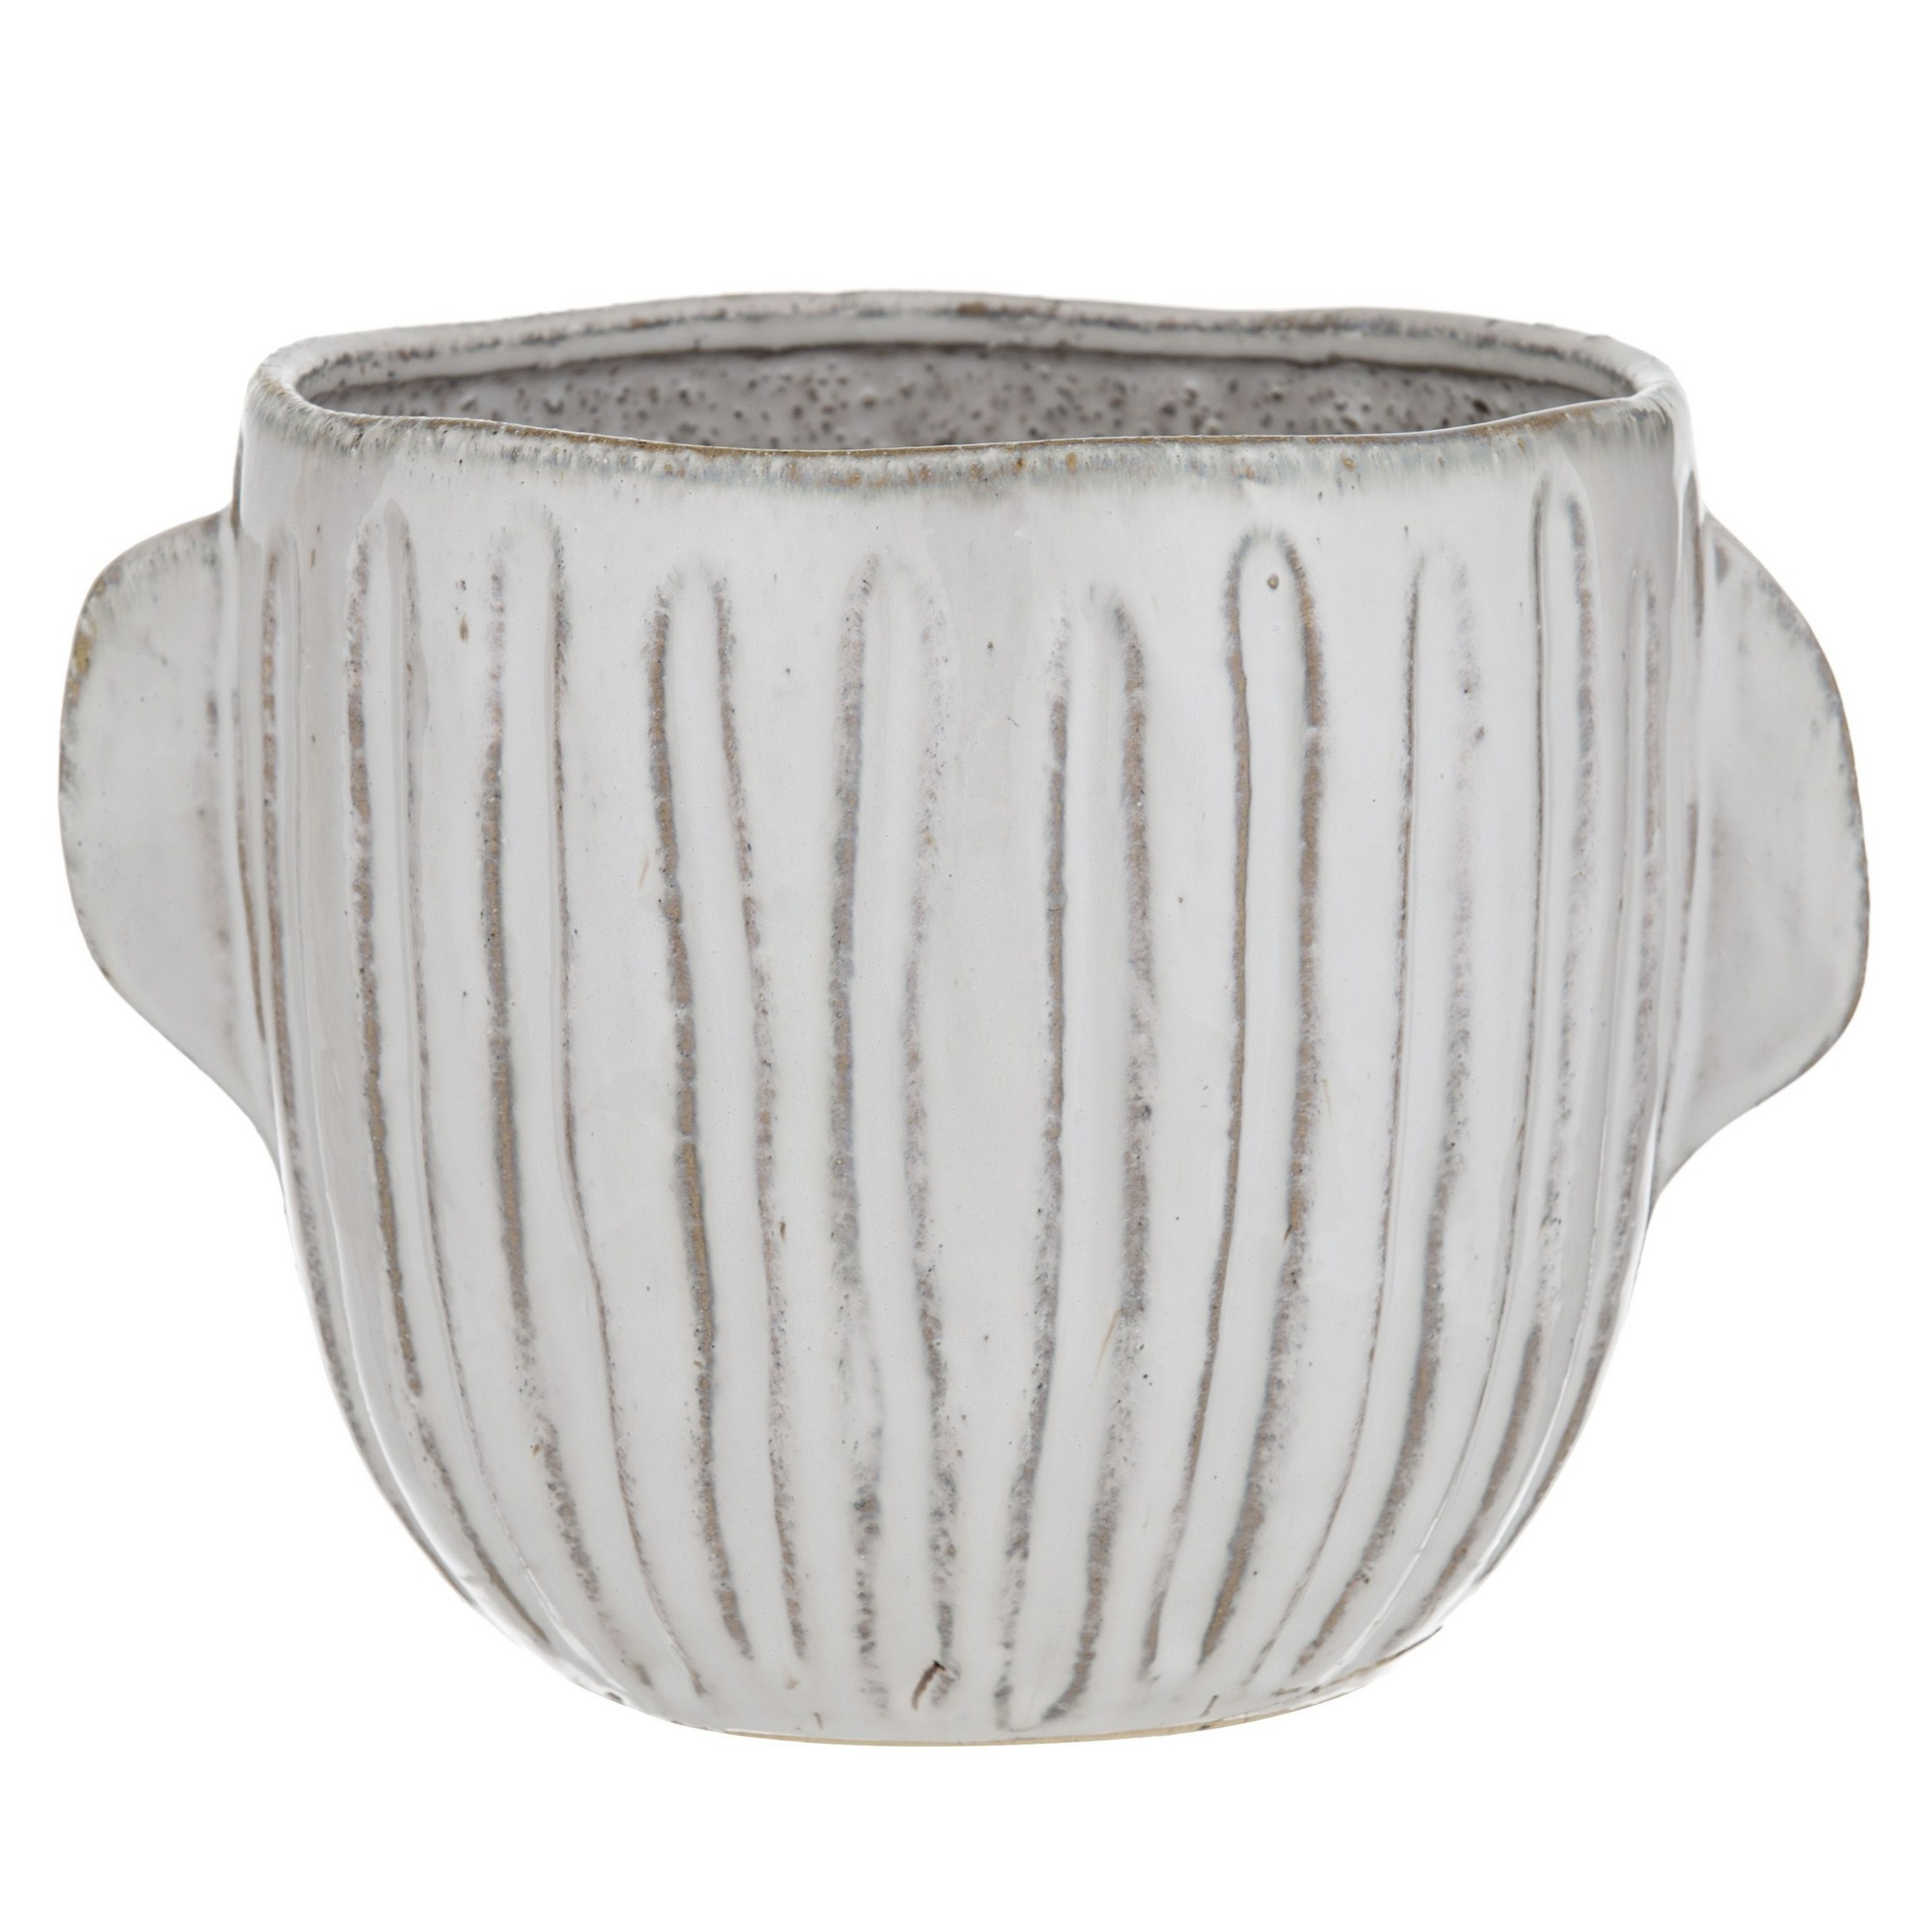 Teagan Ceramic Pot, Cream